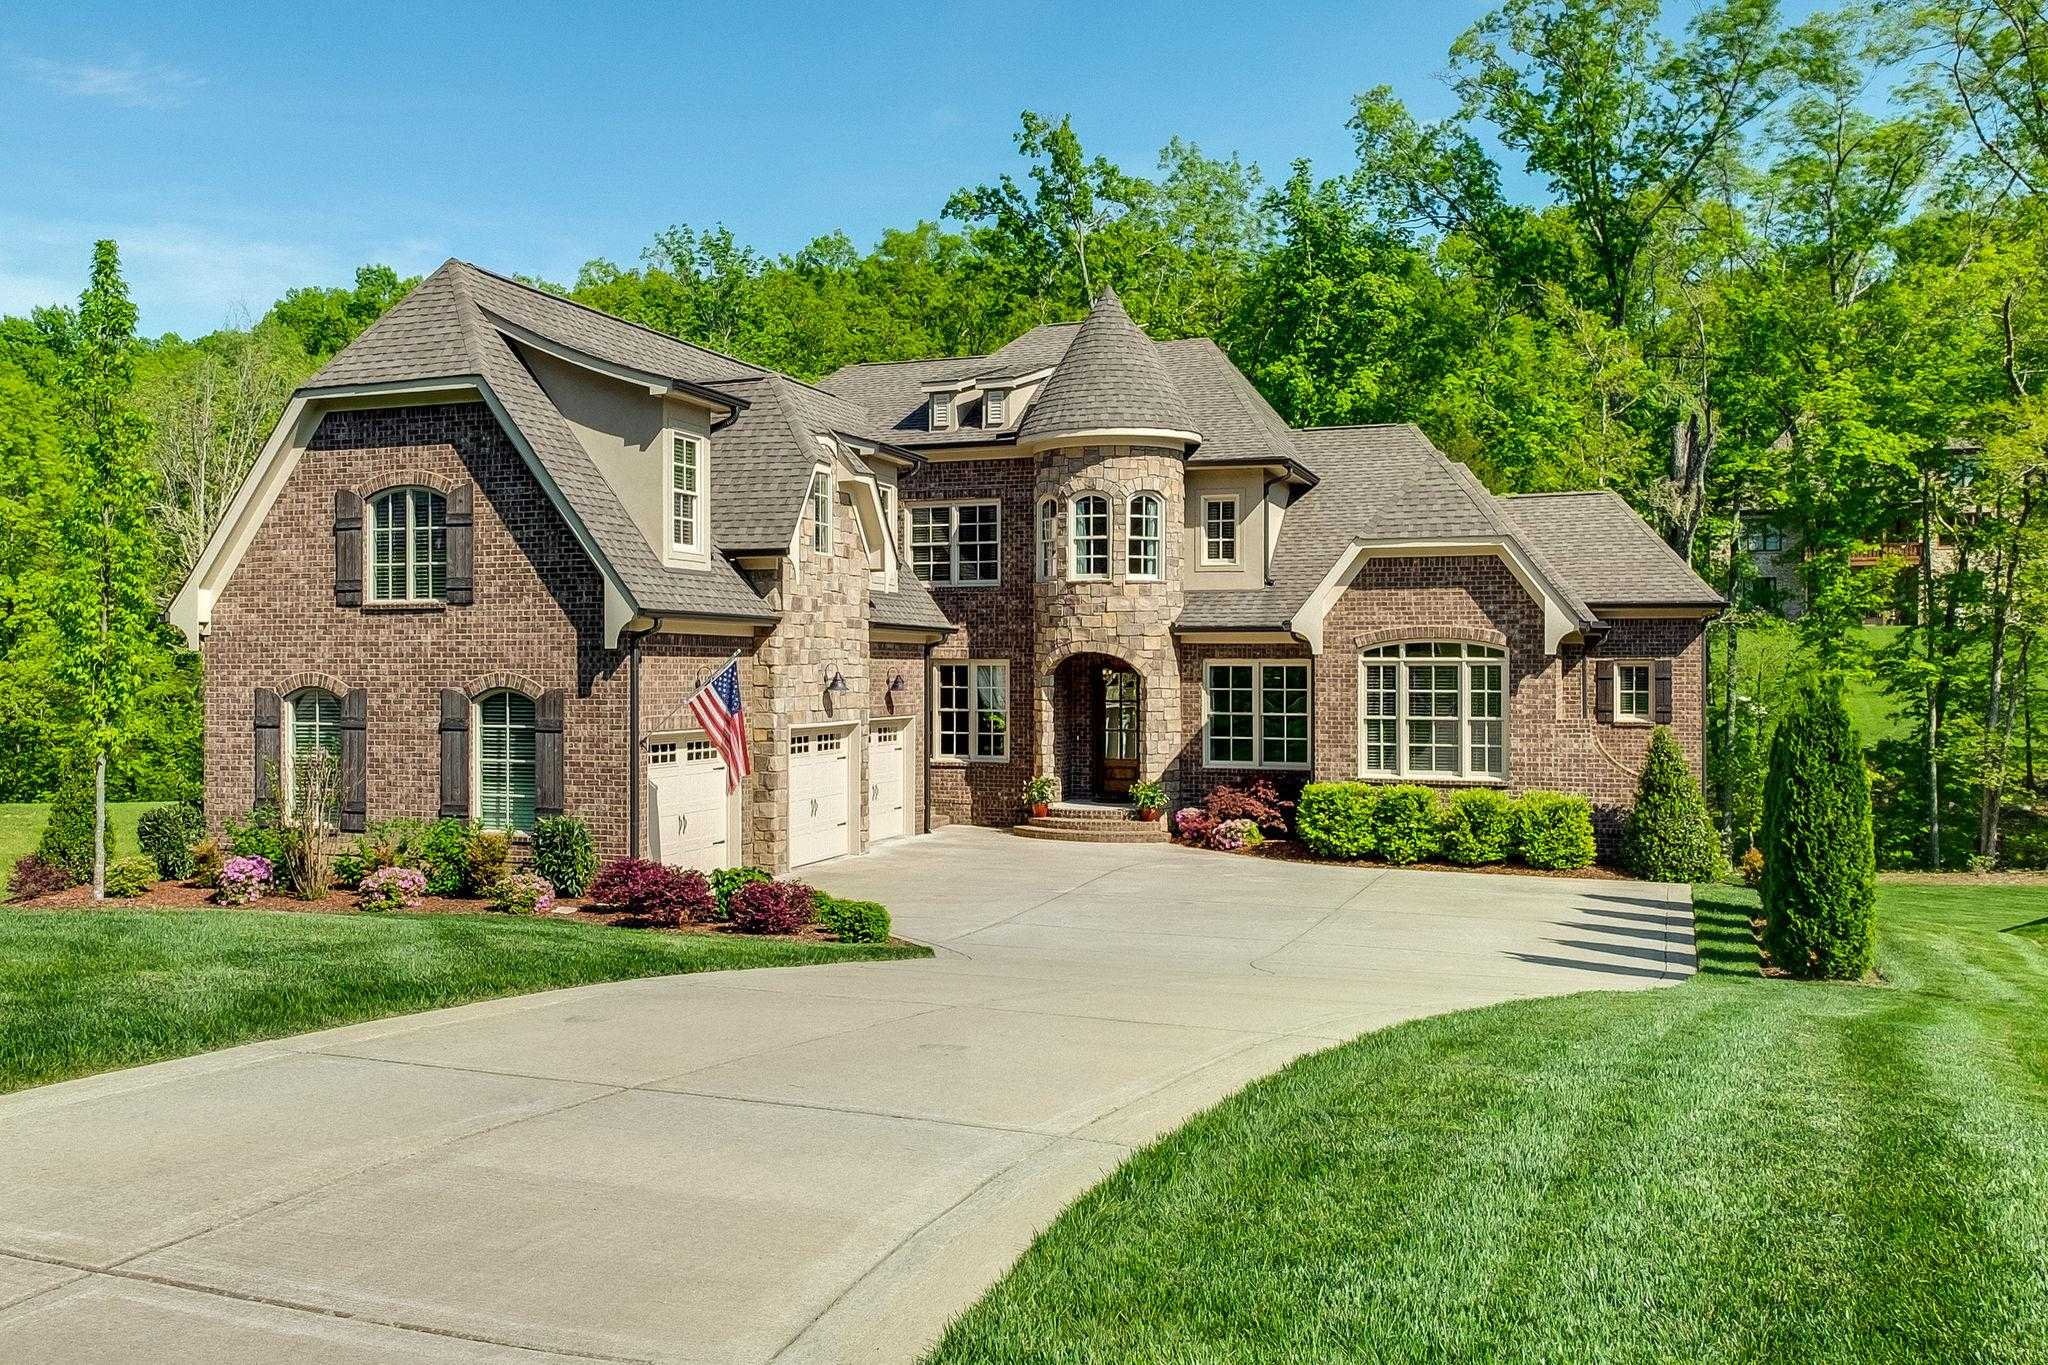 tuscany hills homebrentwood tennessee